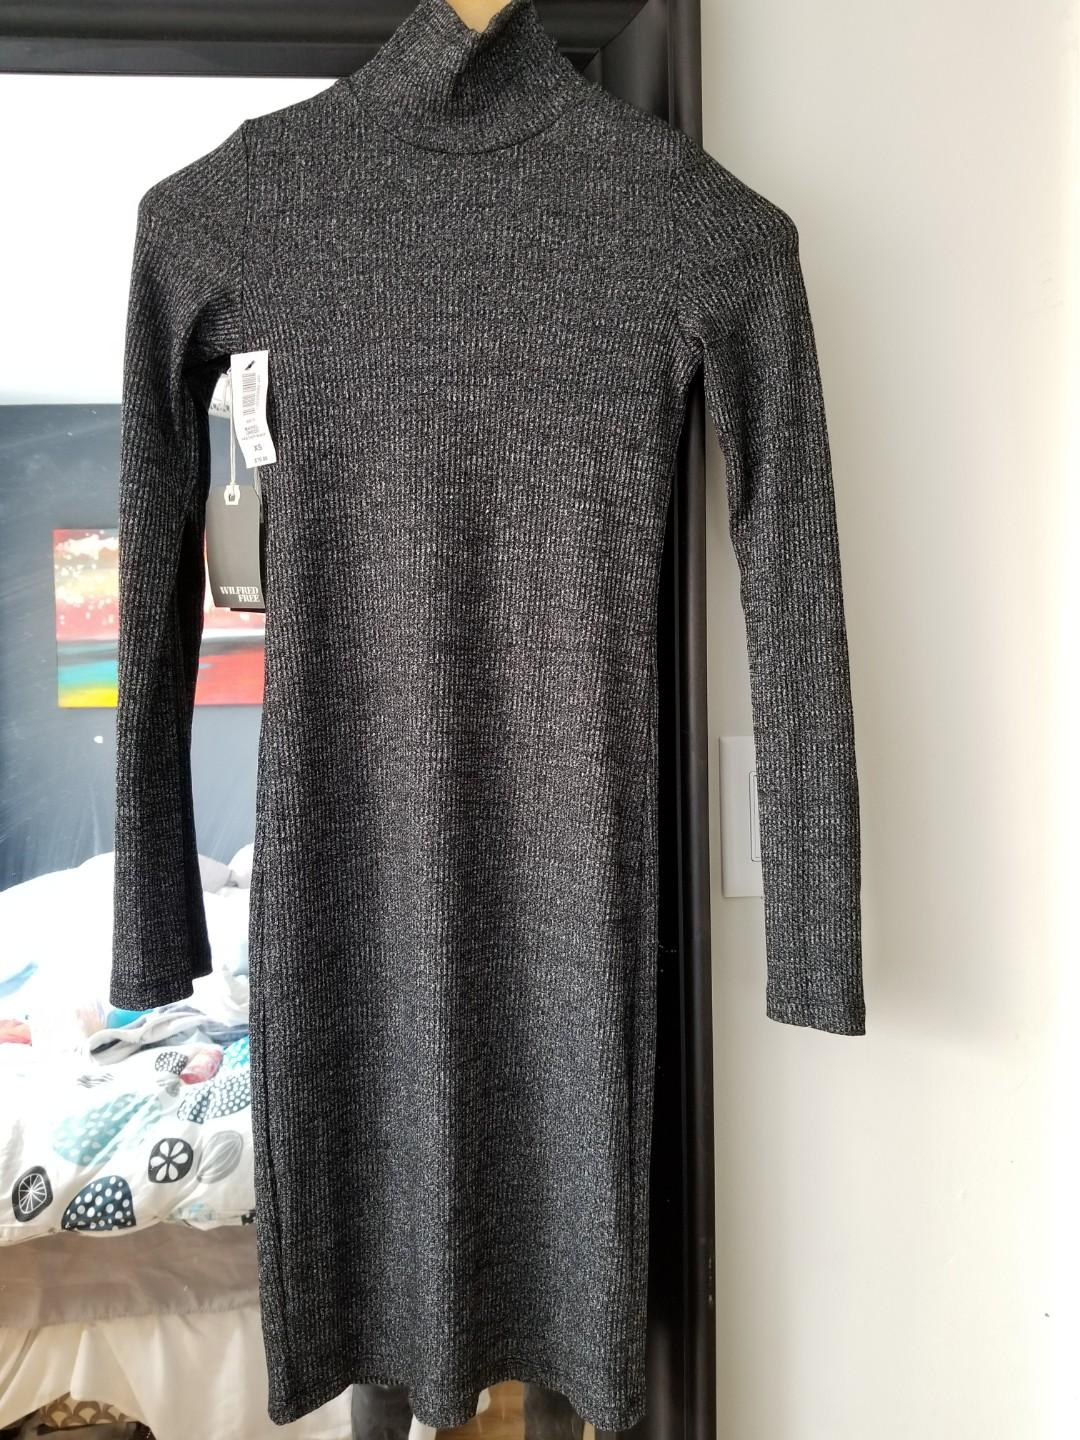 Wilfred Muriel dress. Size XS. New with tags. Regiftable. Never worn. Purchased for $75+tax. PU gerrard and main for $38 or Yorkville for $40.